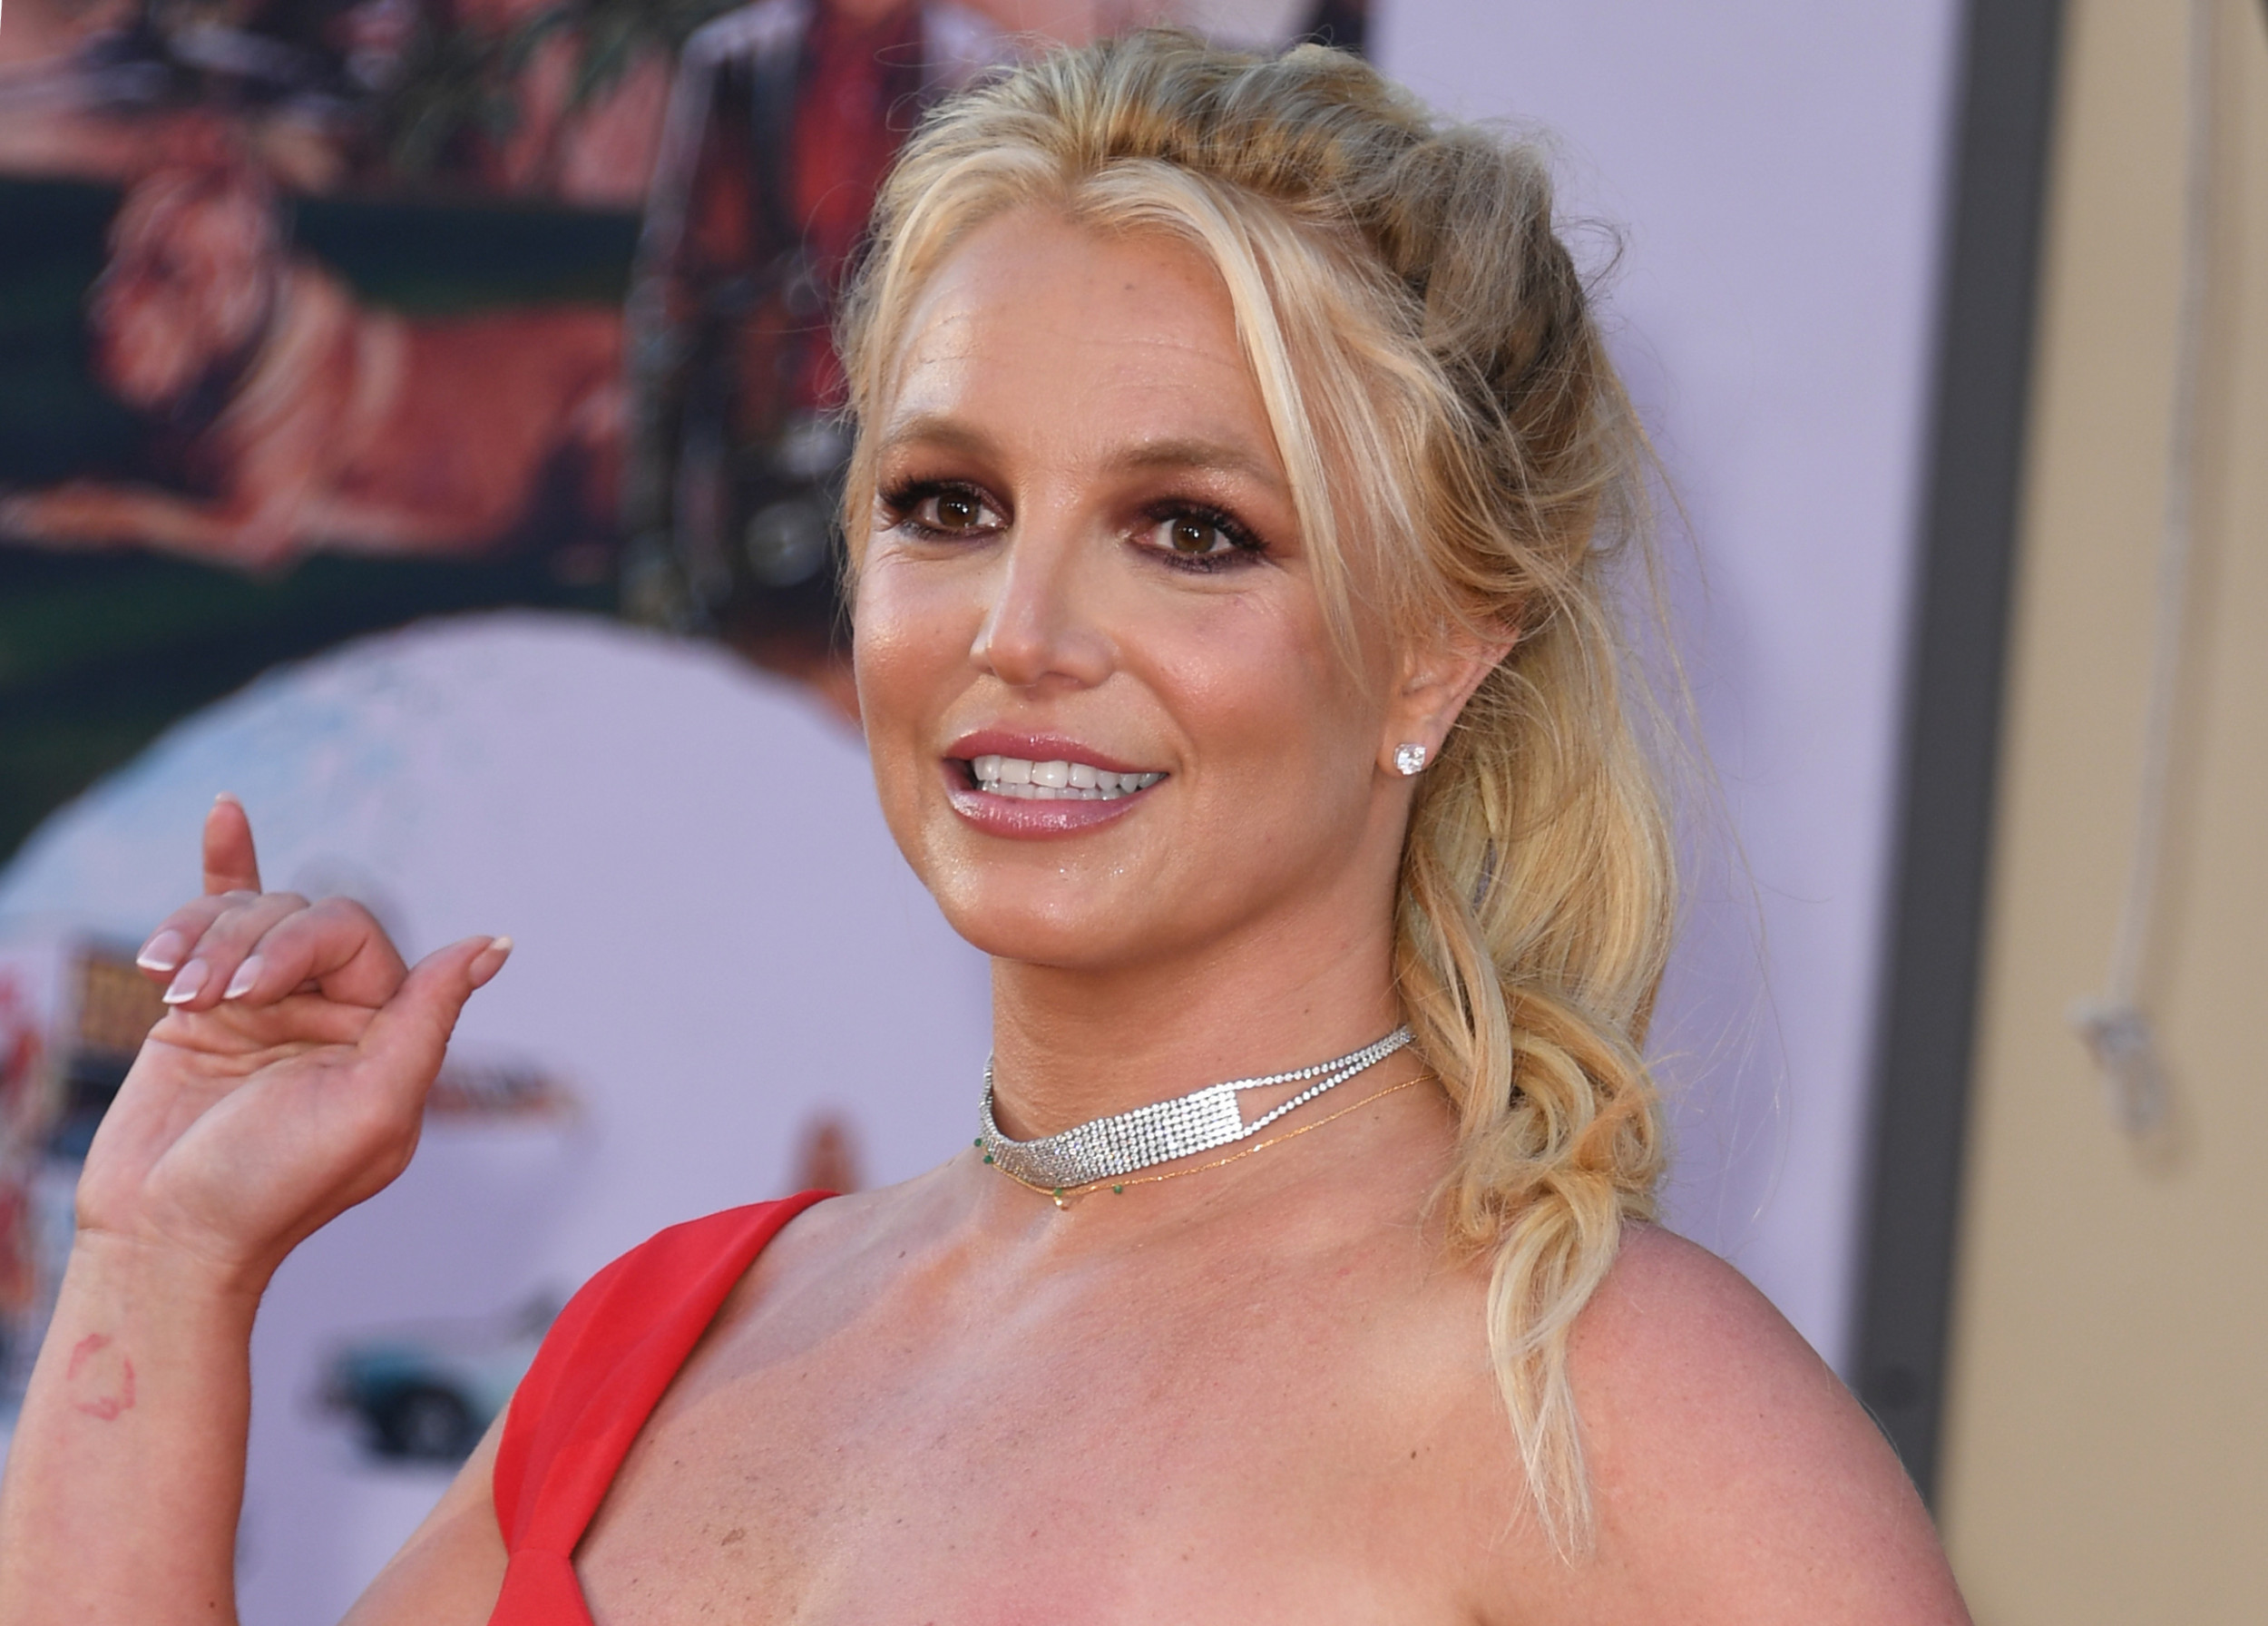 Britney's struggle is a lasting consequence of the worst celebrity gossip era